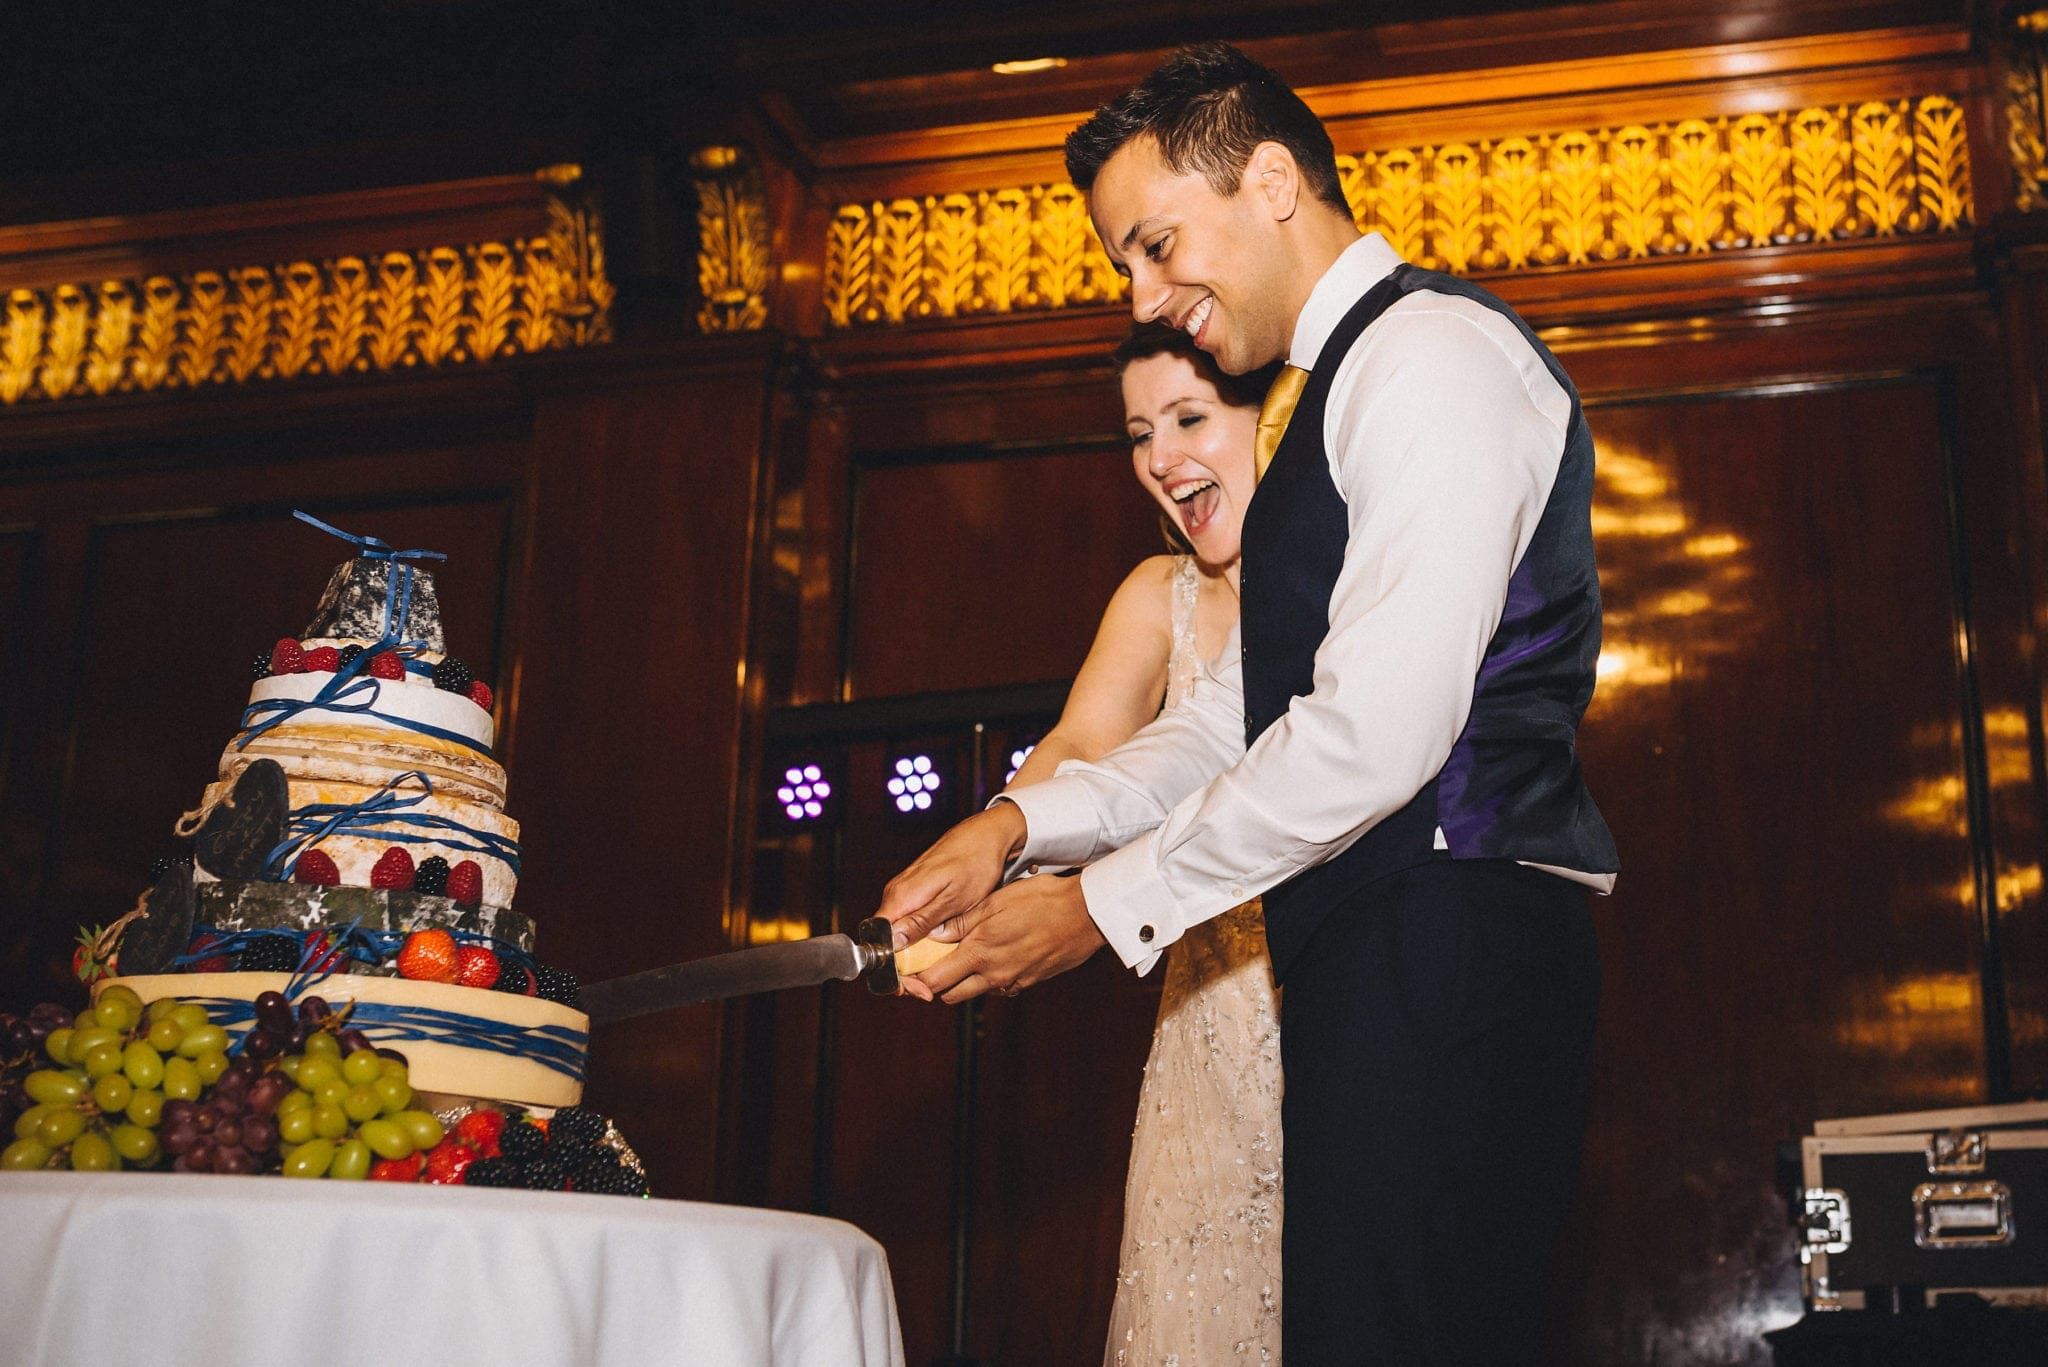 Bride and groom cut cheese wedding cake at relaxed London wedding